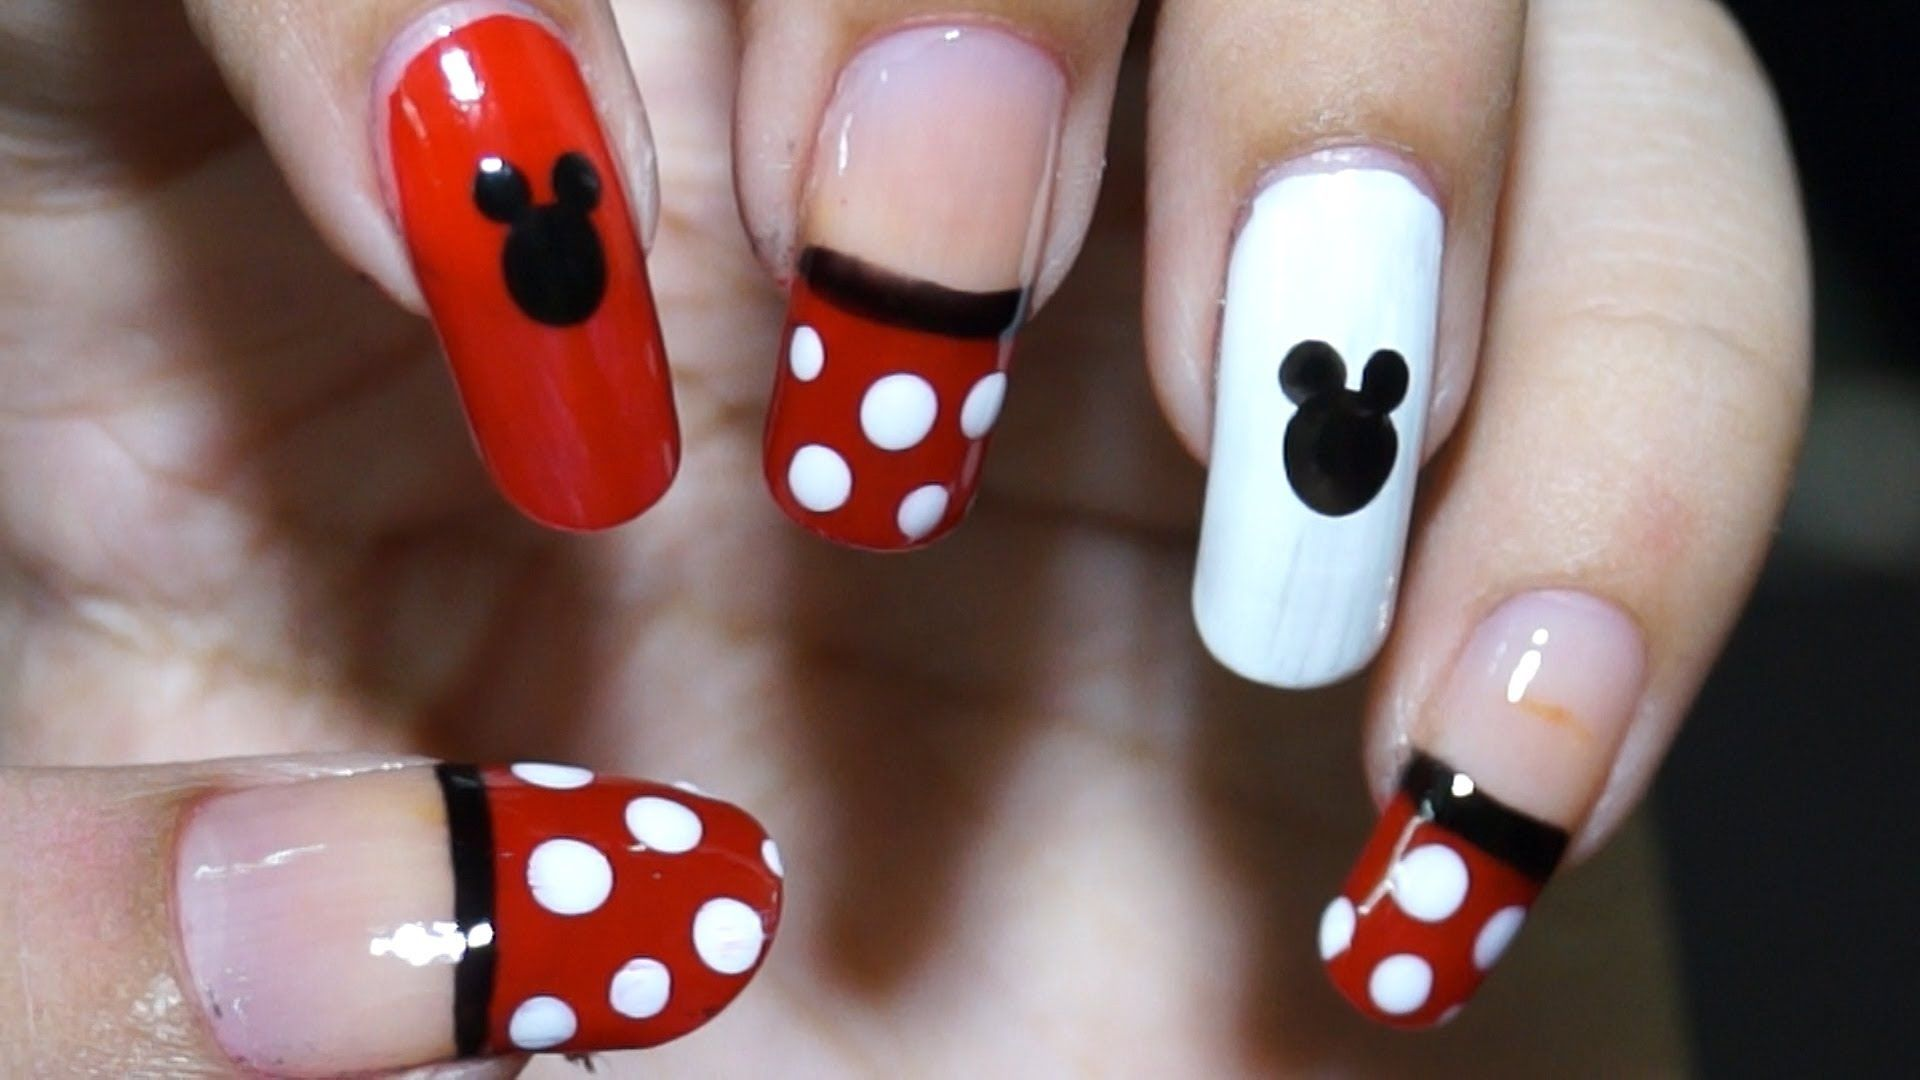 Nail Art At Home Easy Cool Mickey Mouse Design In Steps Nail Art For Beginners Simple Nail Designs Simple Nail Art Designs